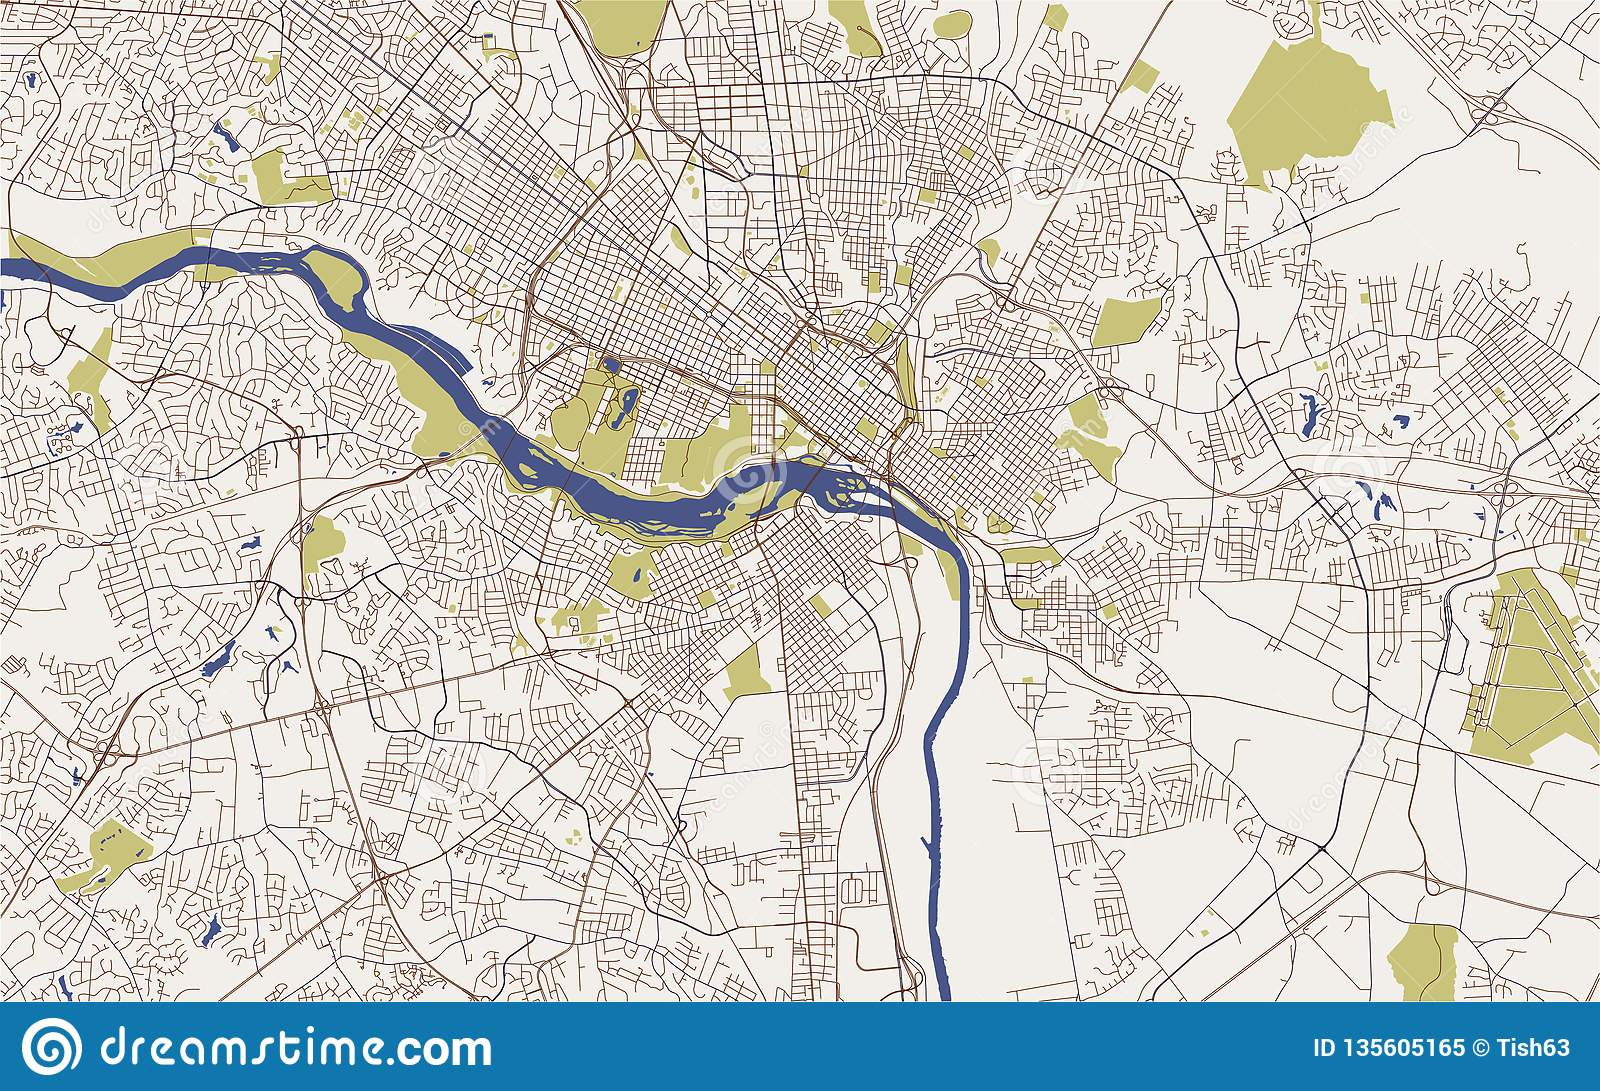 Map Of The City Of Richmond, Virginia, USA Stock Illustration ... Images Virginia Usa Map on map of virginia coast, map charlotte usa, map minneapolis usa, map kentucky usa, map of virginia woodbridge va, map delaware usa, map virginia colony shape, maryland map usa, map of outer virginia beach, map of virginia showing cities, map virginia state police, map of virginia beach va neighborhoods, oregon map usa, map of virginia arrington va, map cuba usa, map of eastern usa, map houston usa, map of west virginia, map ohio usa, map arkansas usa,